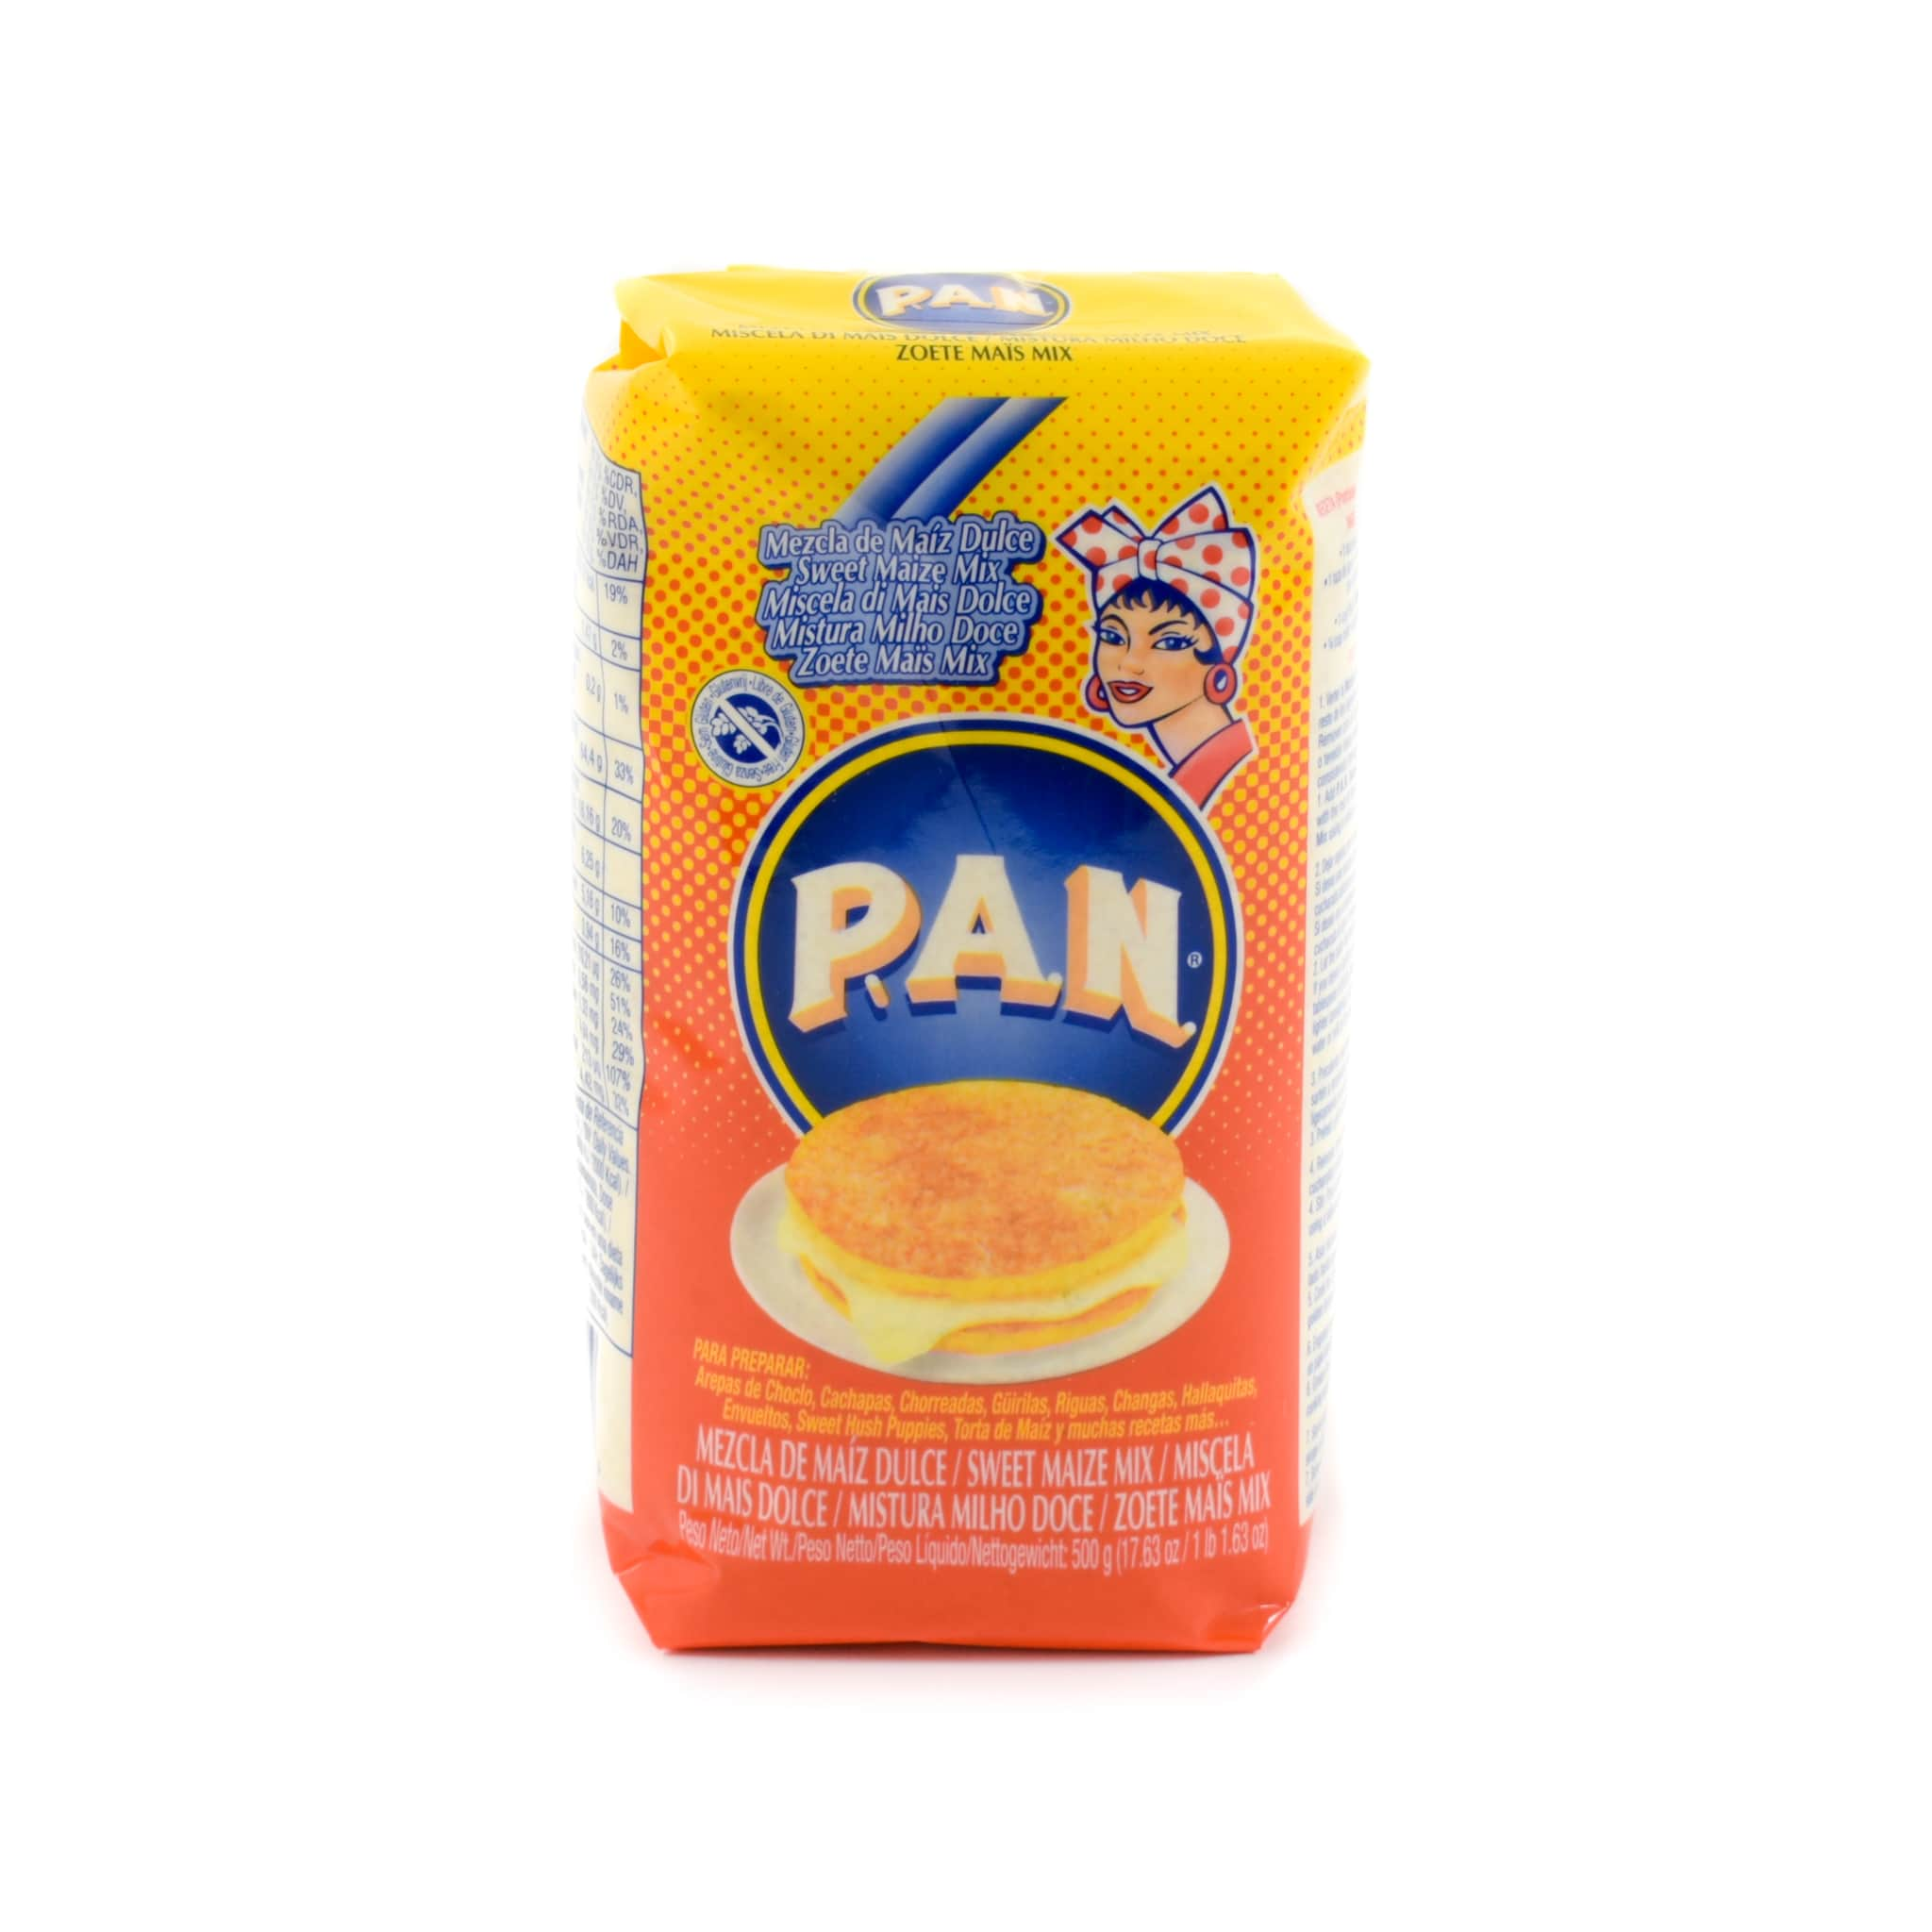 PAN Harina Pan Red 500g Mexican Food and Cooking